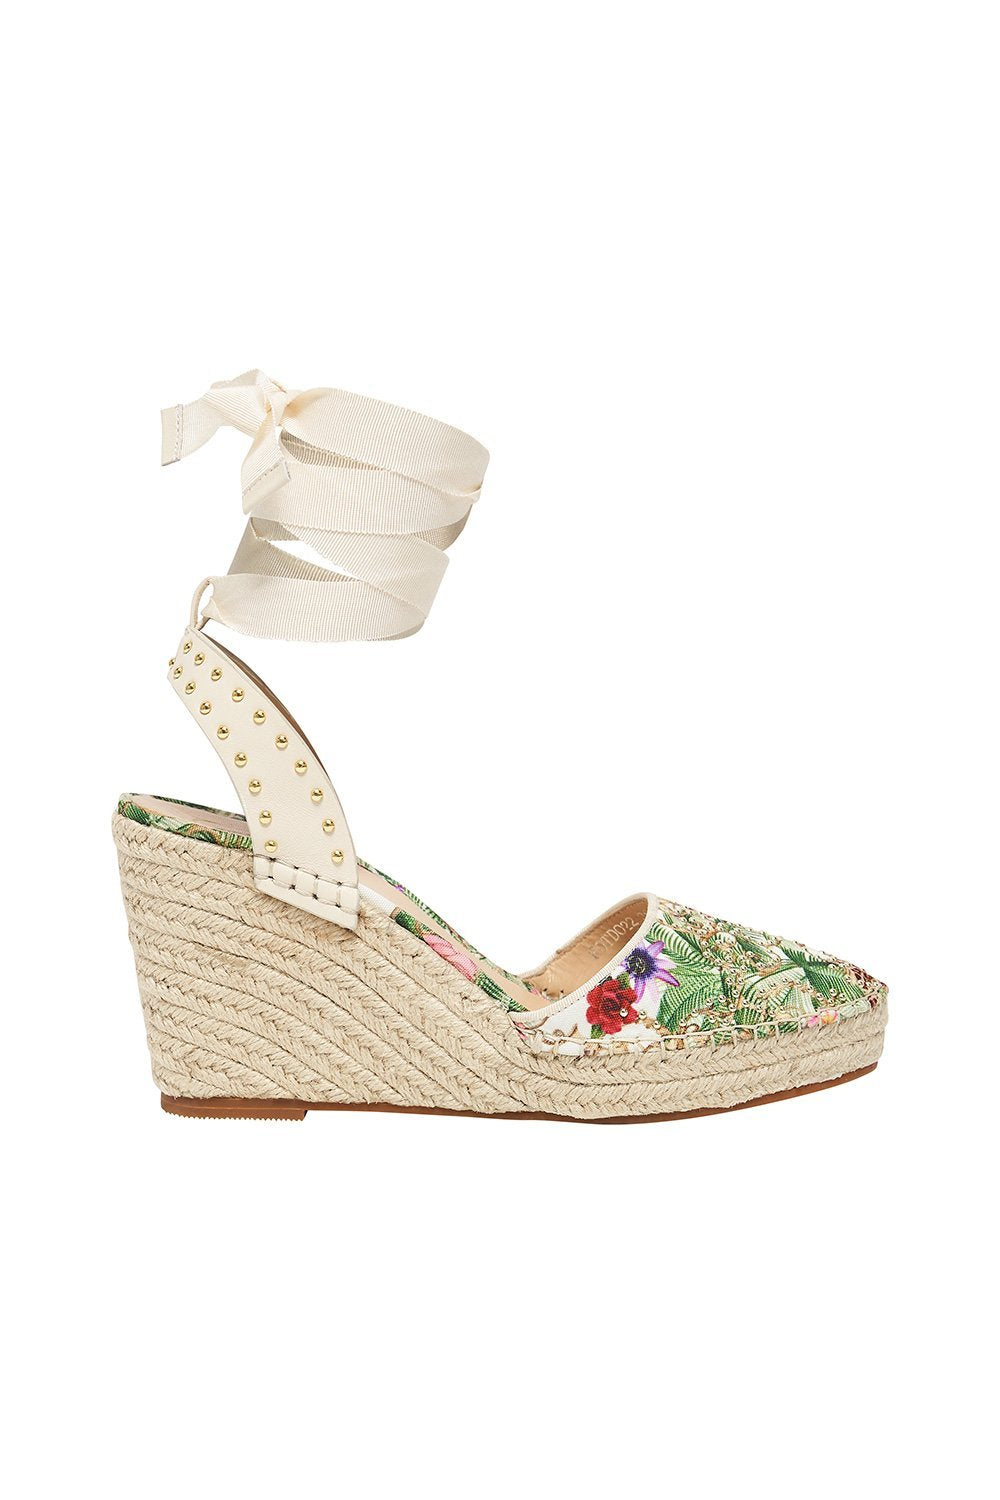 ESPADRILLE WEDGE W GROSGRAIN TIE FAIR VERONA